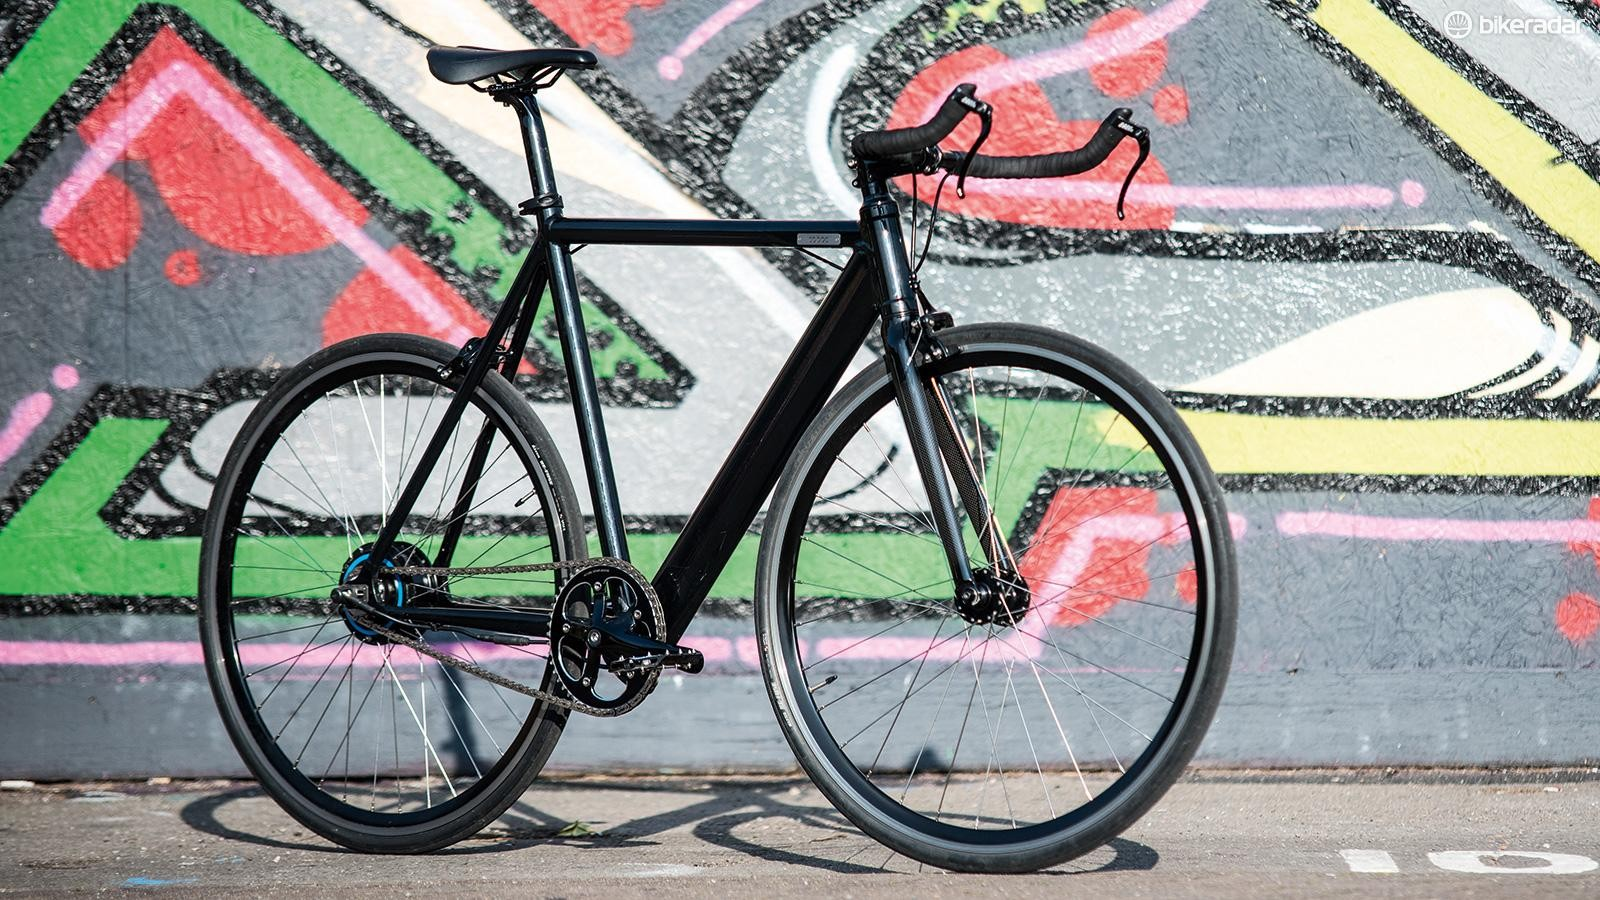 Coboc's slick looking Ecycle